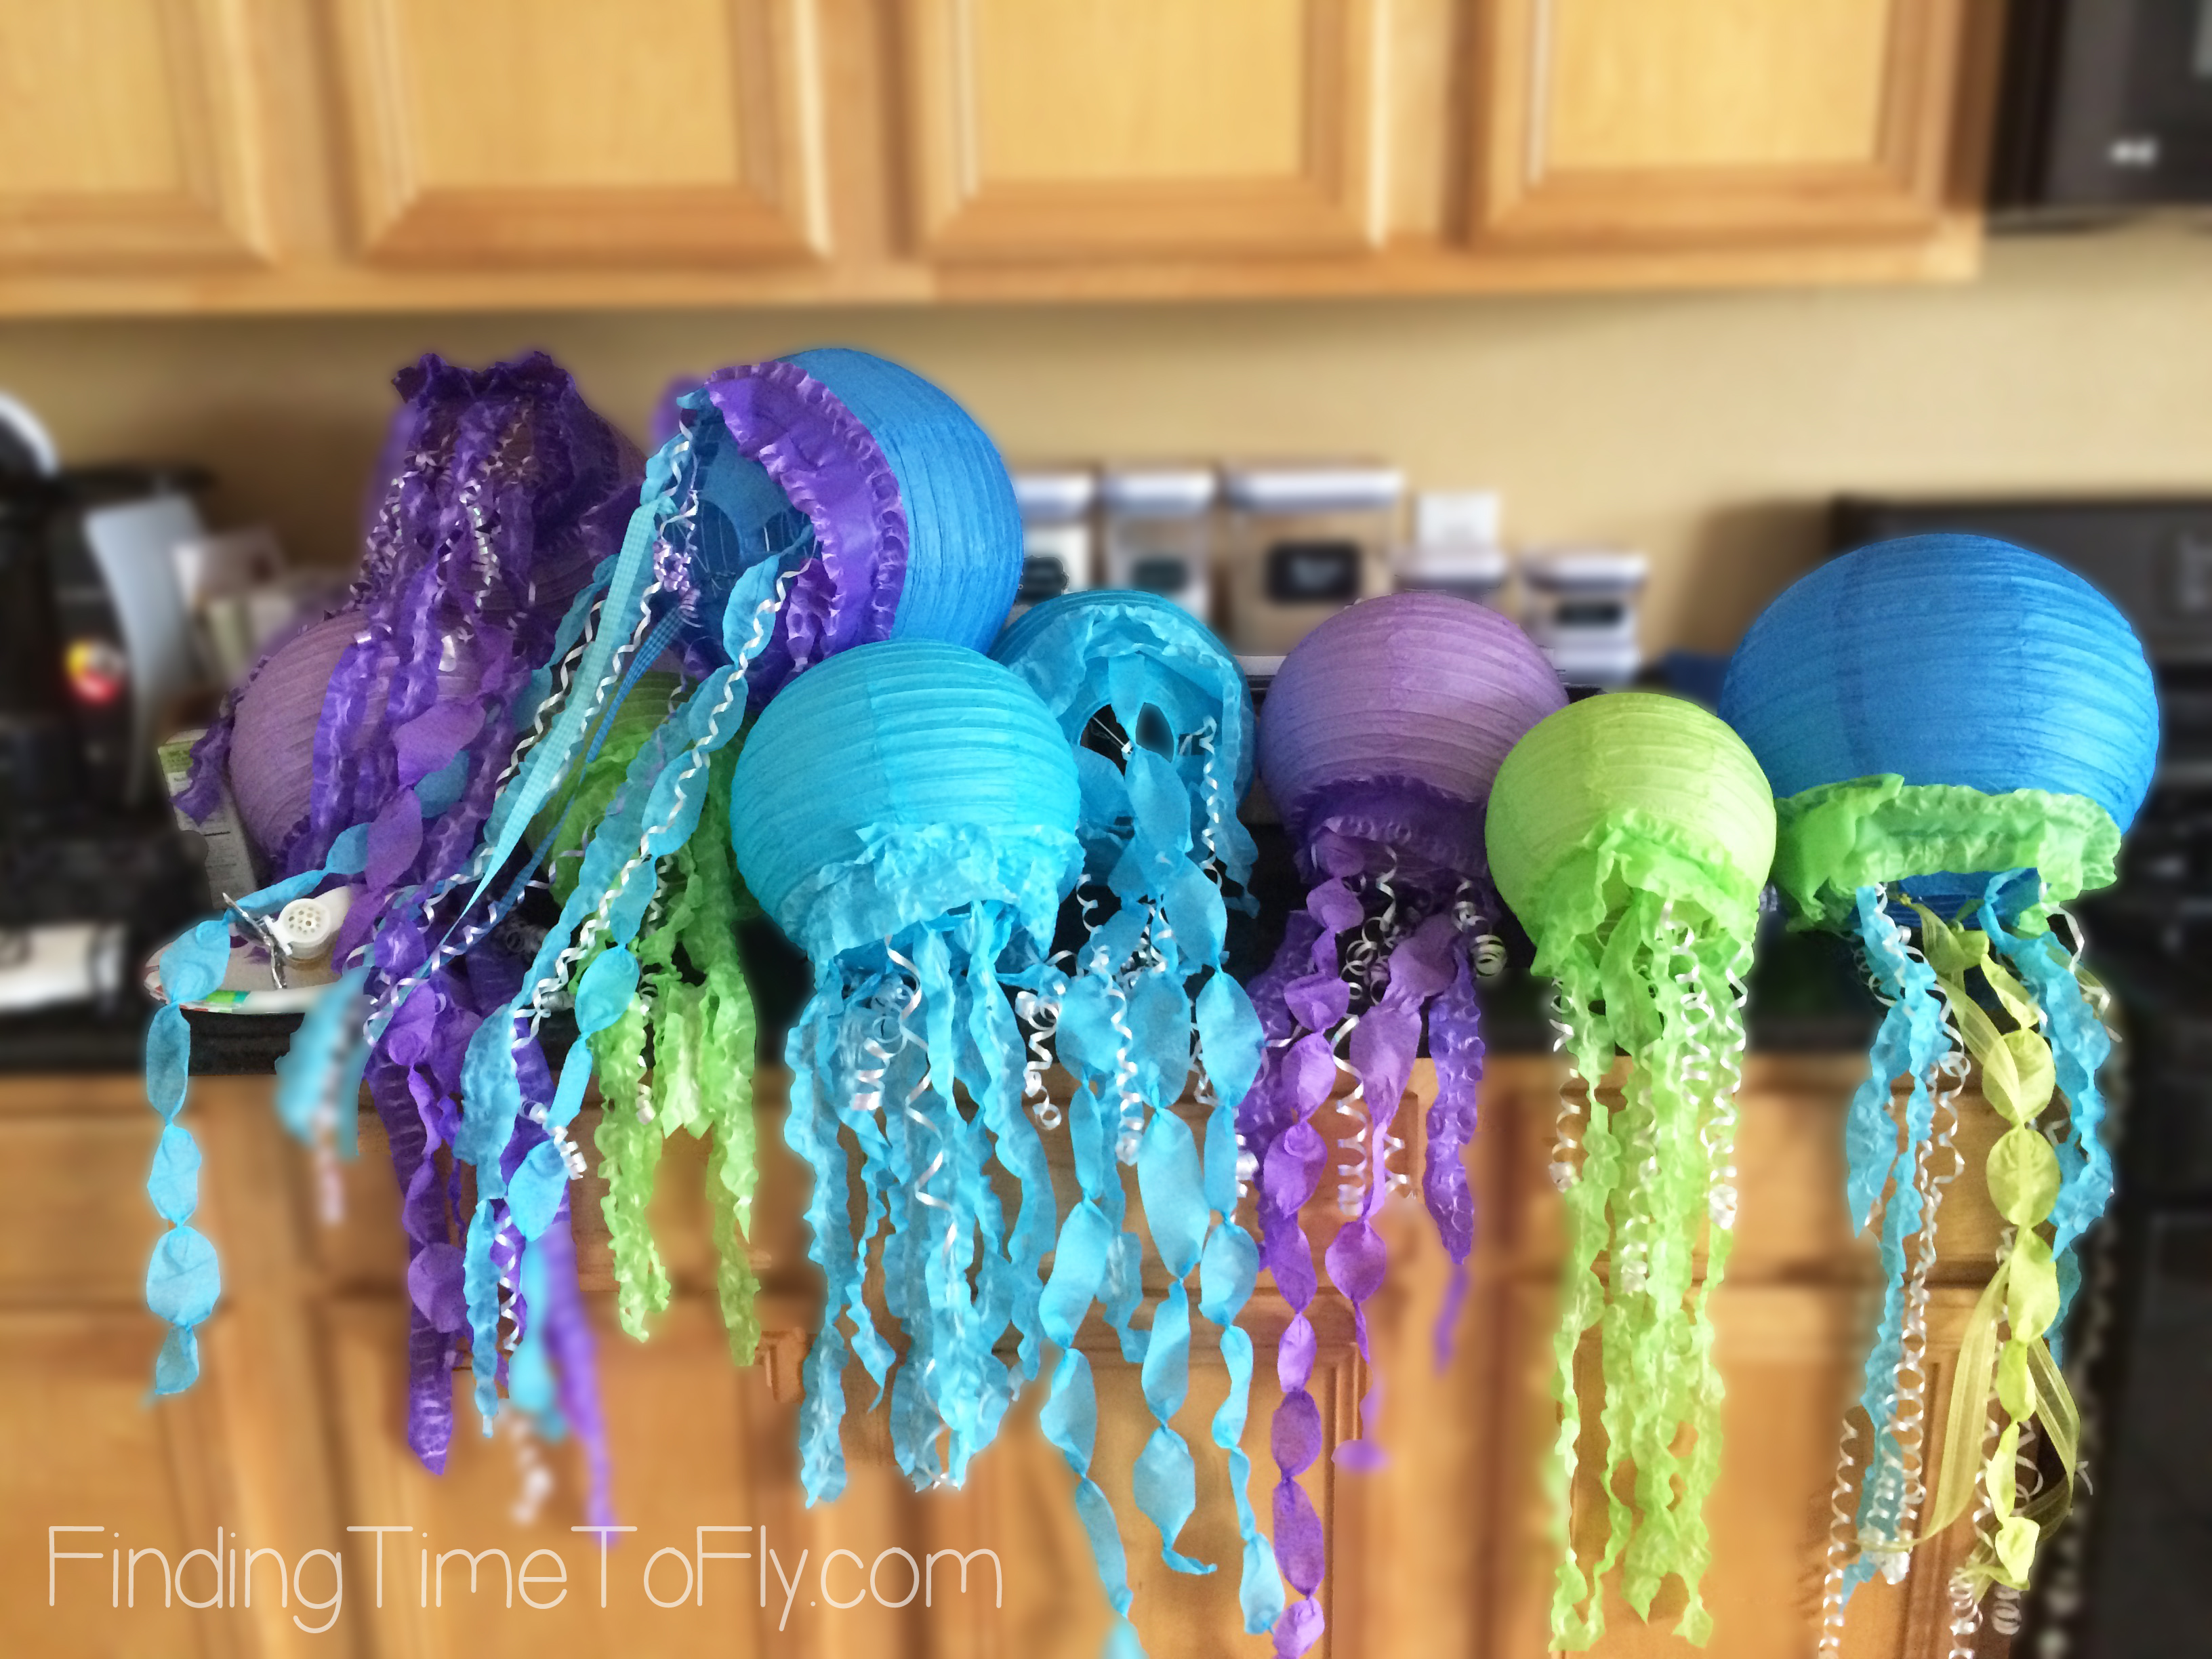 mermaid-under-the-sea-party-jellyfish-lanterns-2